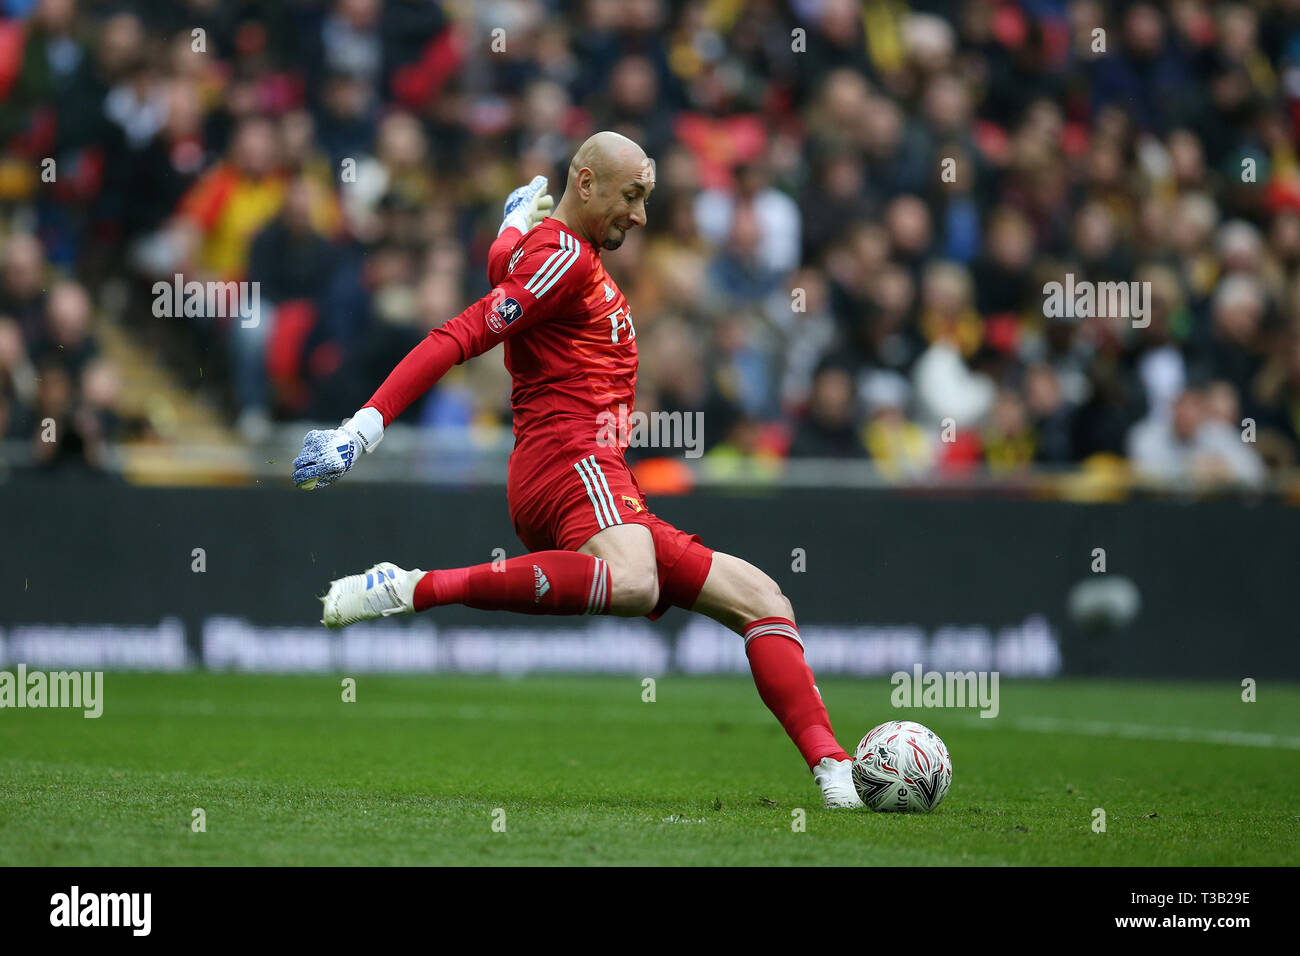 London, UK. 07th Apr, 2019. Watford goalkeeper Heurelho Gomes in action.The Emirates FA Cup, semi-final match, Watford v Wolverhampton Wanderers at Wembley Stadium in London on Sunday 7th April 2019. this image may only be used for Editorial purposes. Editorial use only, license required for commercial use. No use in betting, games or a single club/league/player publications . pic by Andrew Orchard/Andrew Orchard sports photography/Alamy Live news Credit: Andrew Orchard sports photography/Alamy Live News Stock Photo